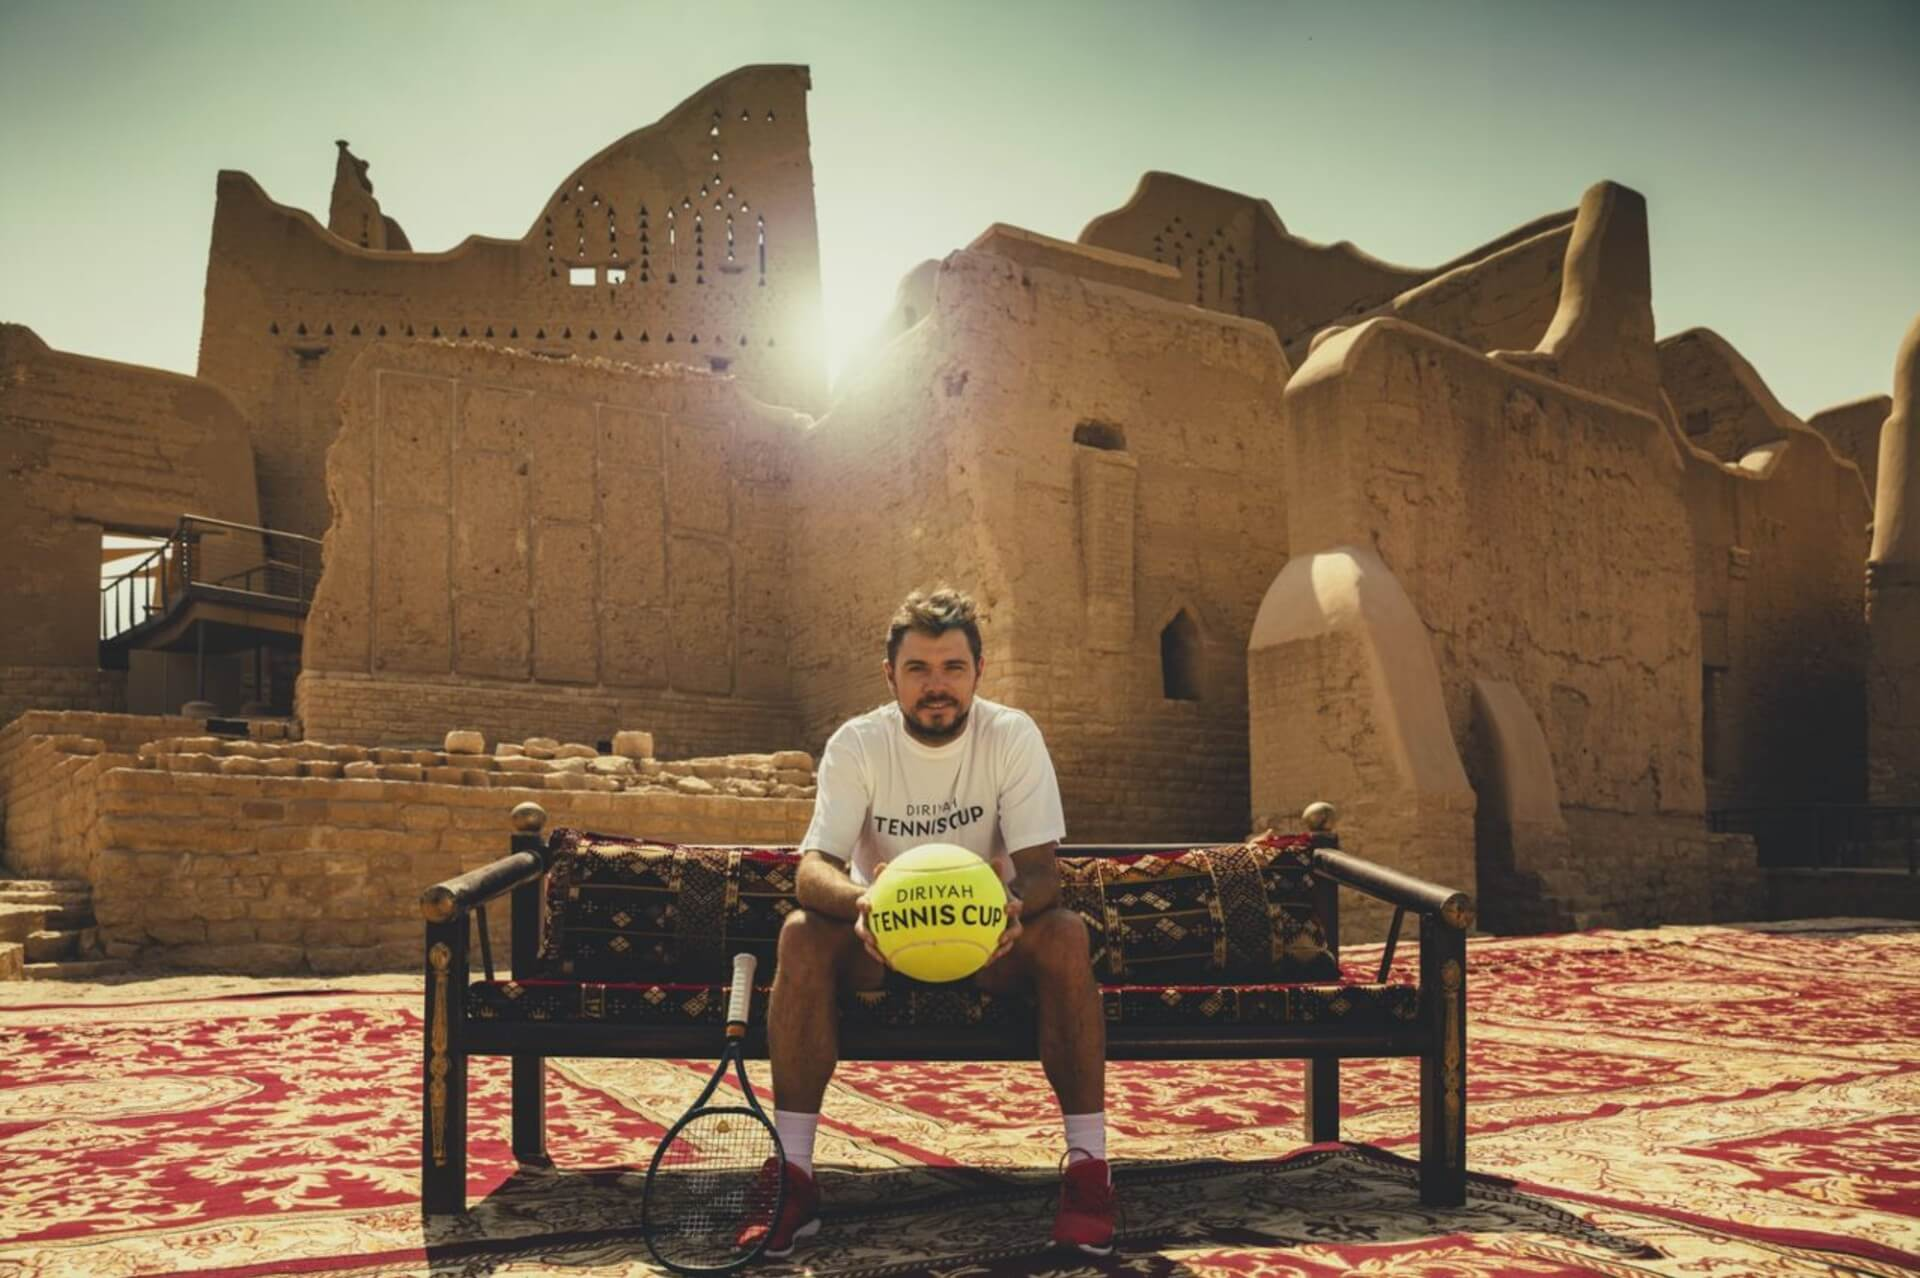 Diriyah Tennis Cup officially launches with global stars Stanislas Wawrinka and Daniil Medvedev confirmed